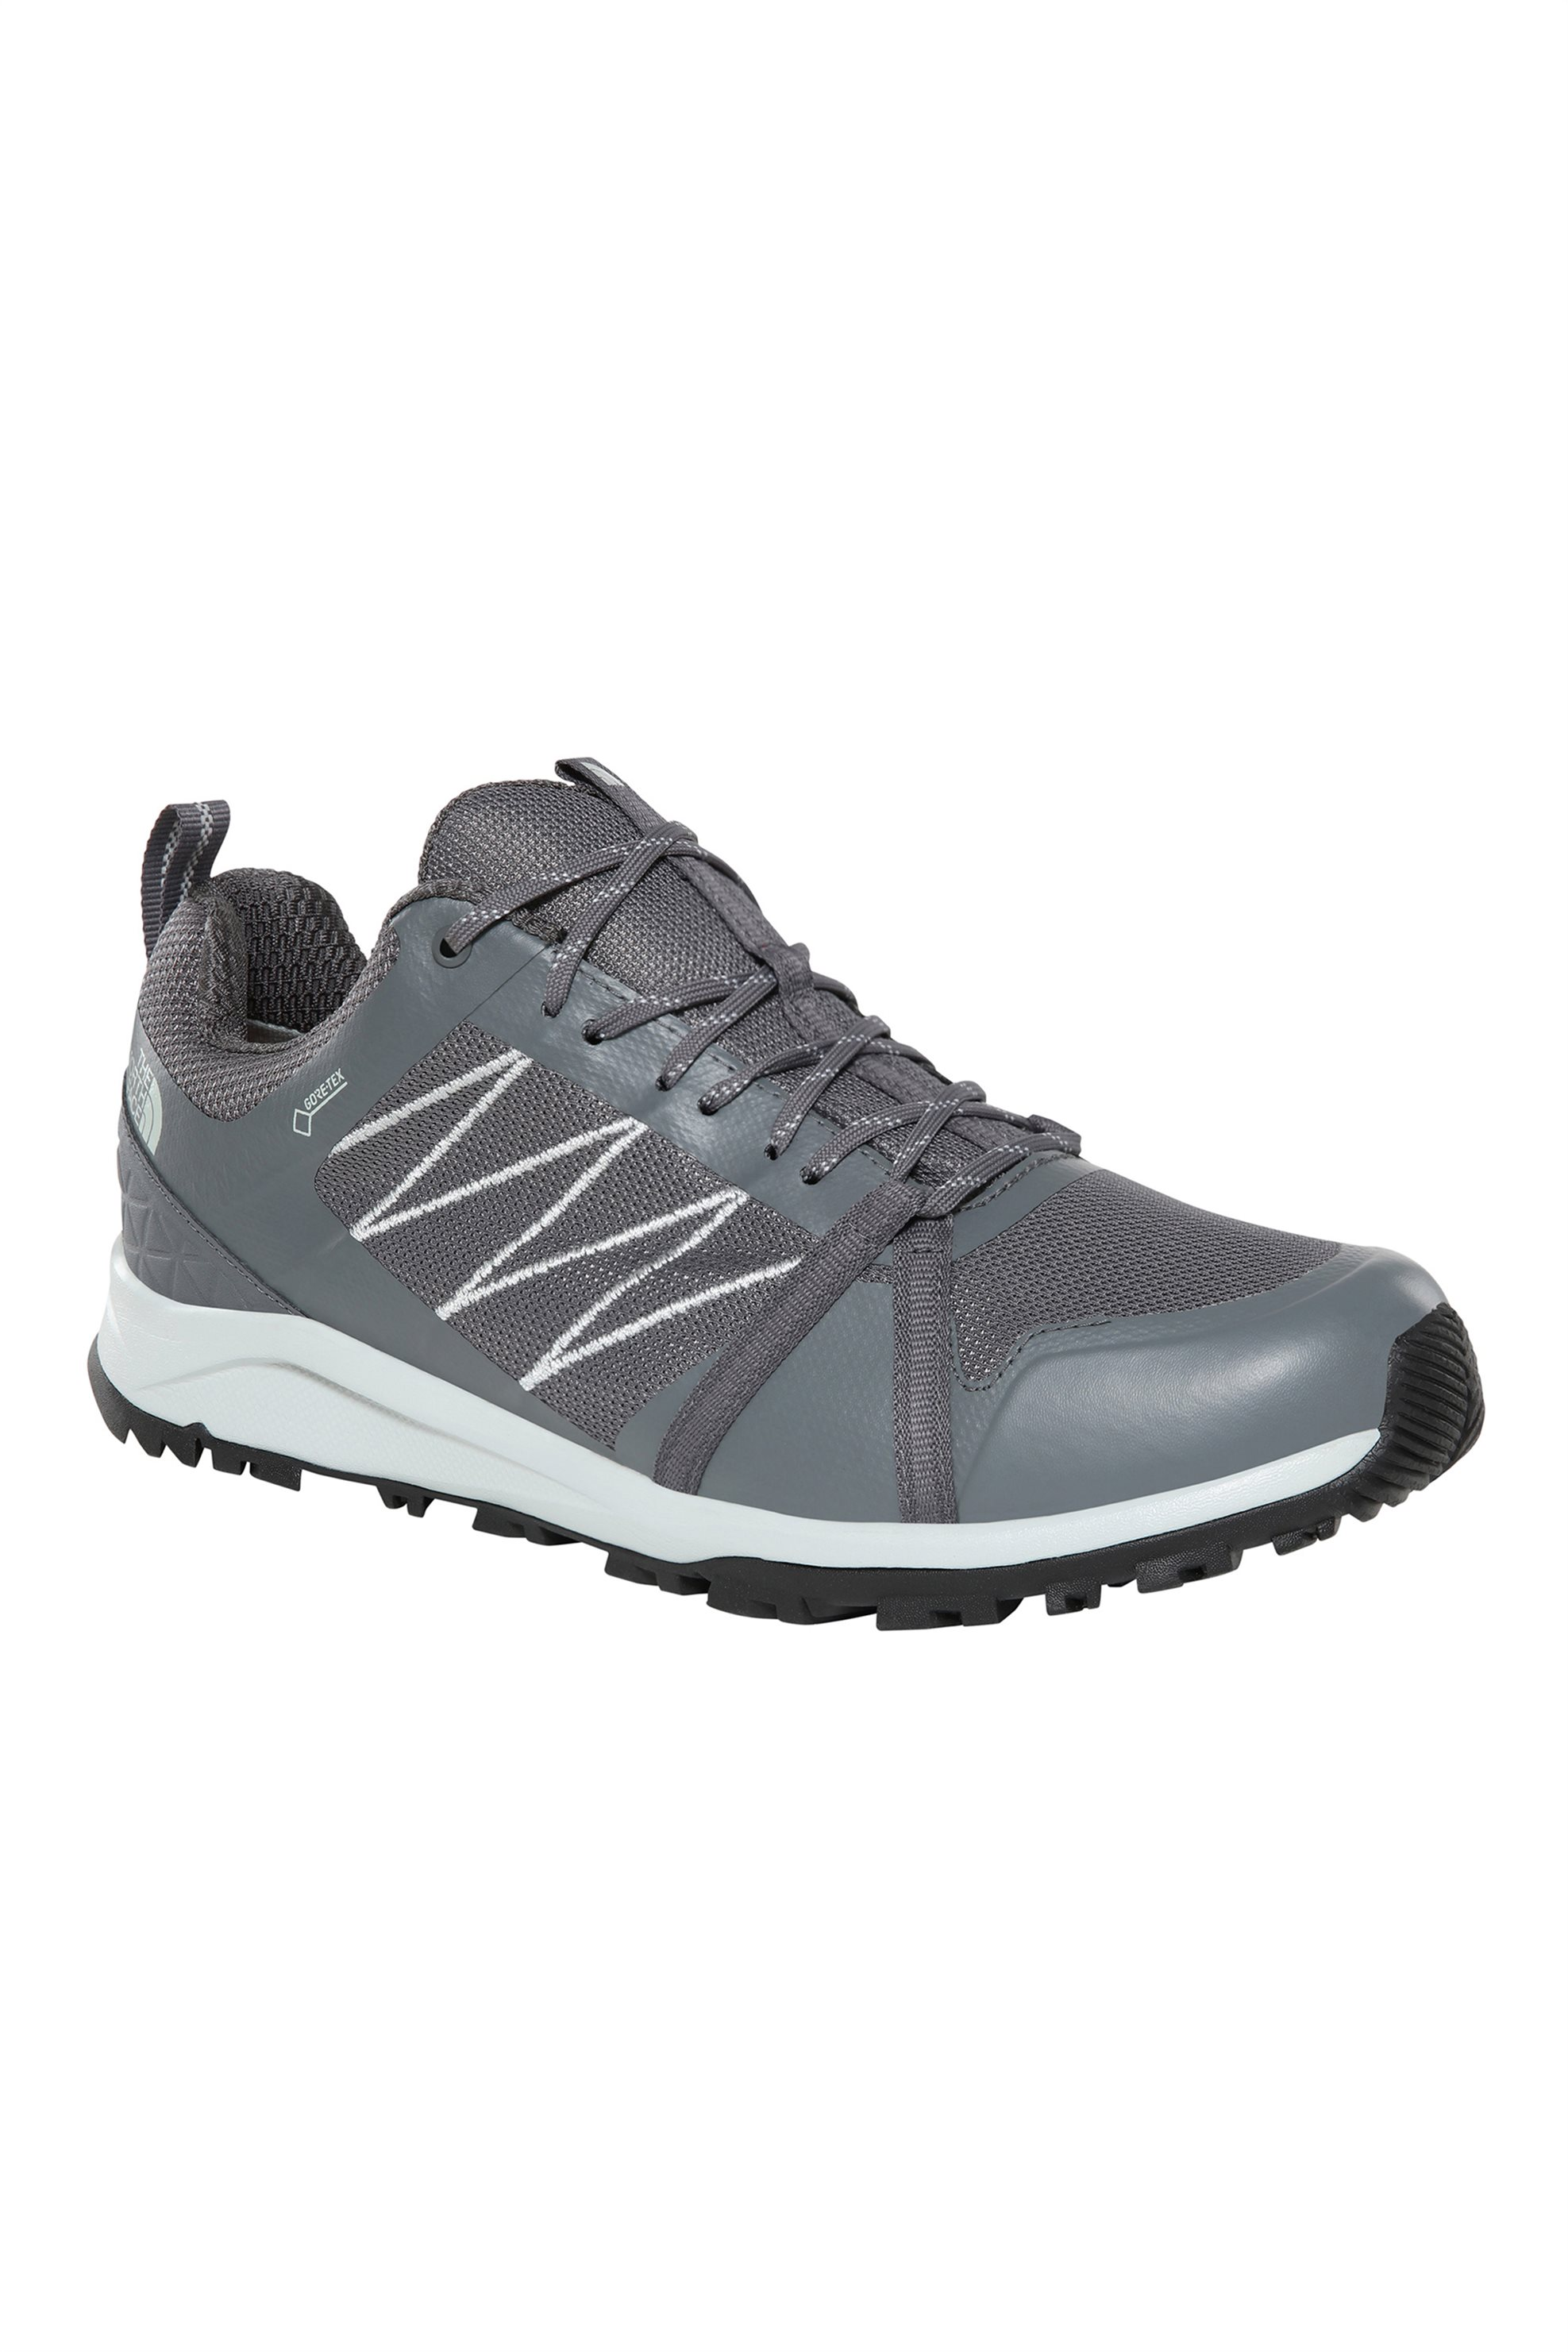 The North Face ανδρικά sneakers Erkek Lw Fp İi Gtx – NF0A3RED0HV1 – Γκρι